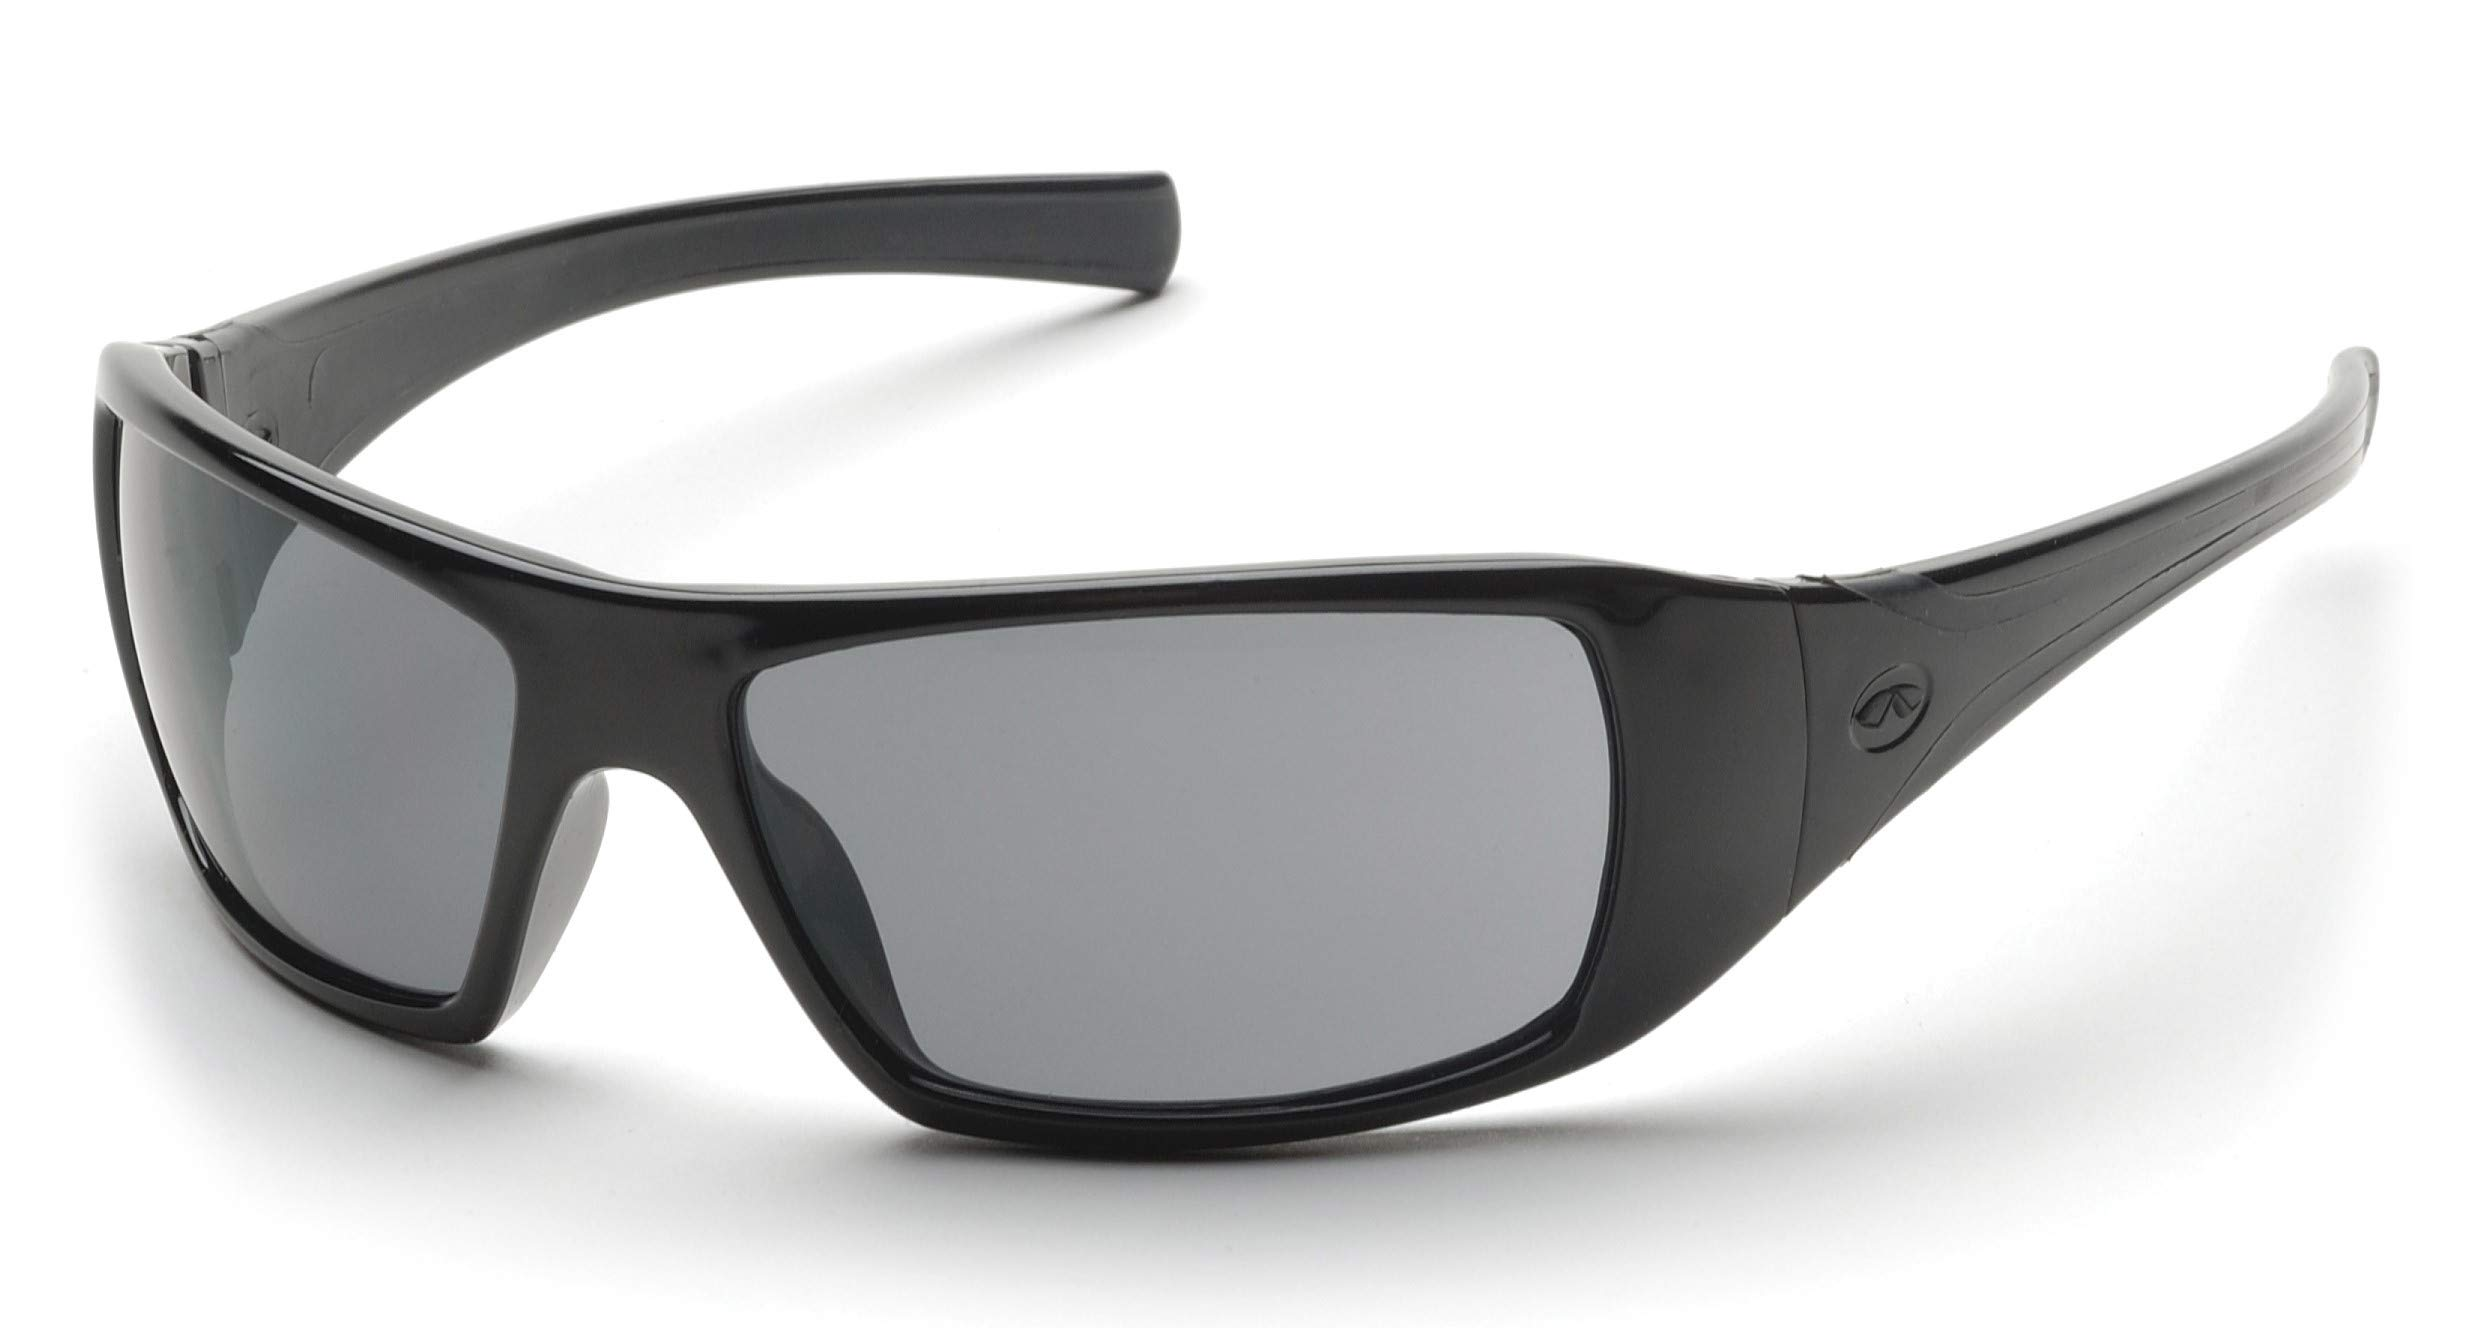 Pyramex Goliath Safety Eyewear, Black Frame, Gray Polarized Lens